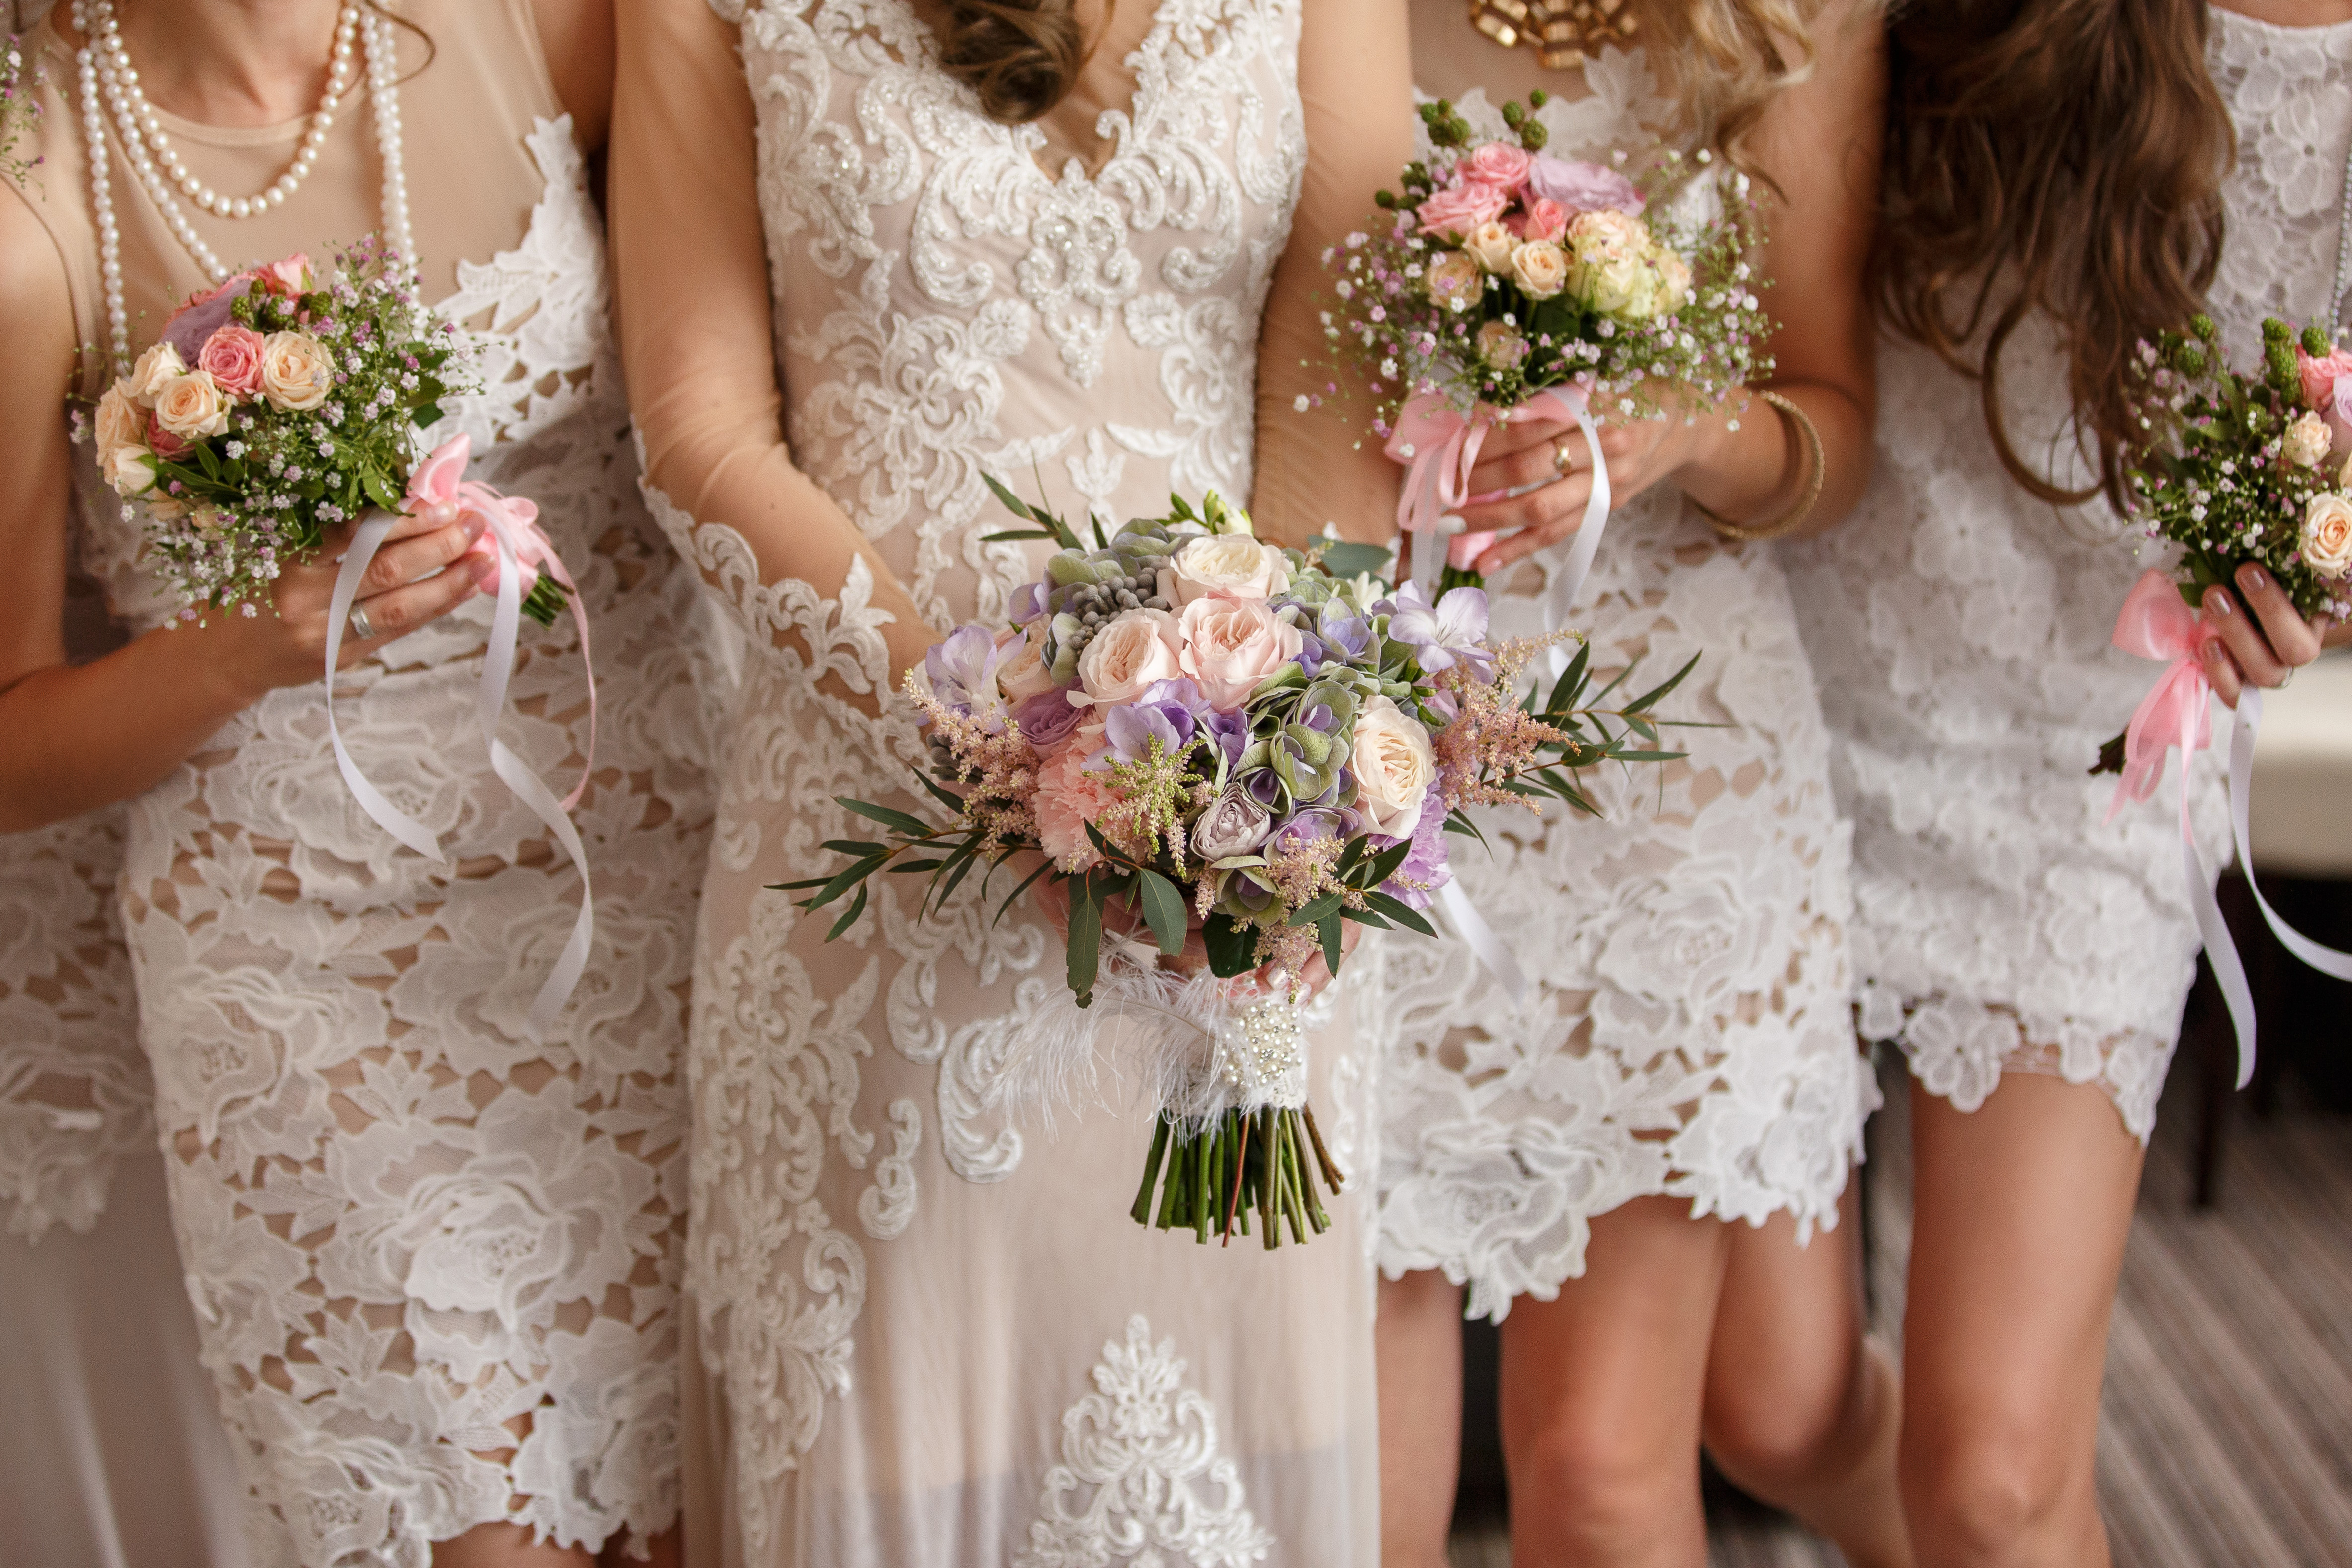 Bridal Party Customs and Traditions